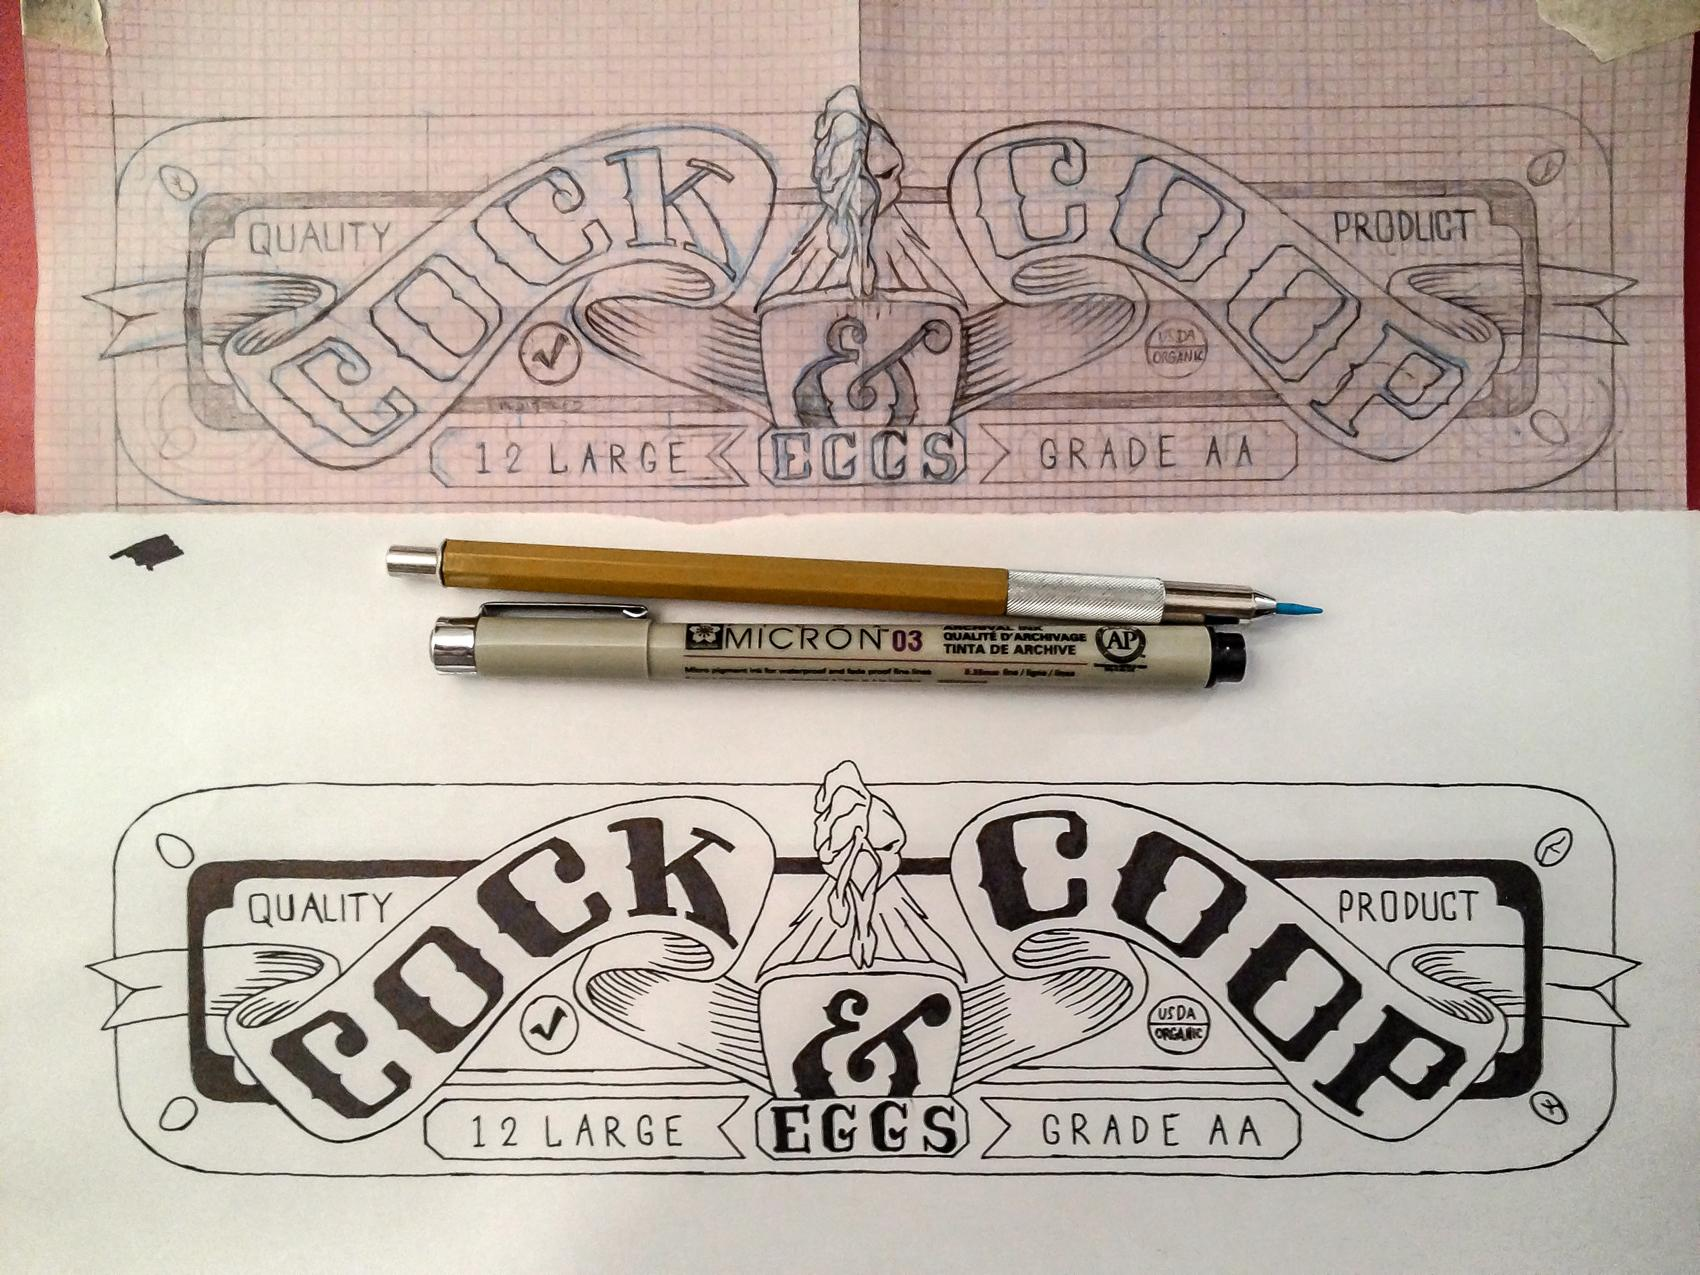 Cock & Coop - image 7 - student project